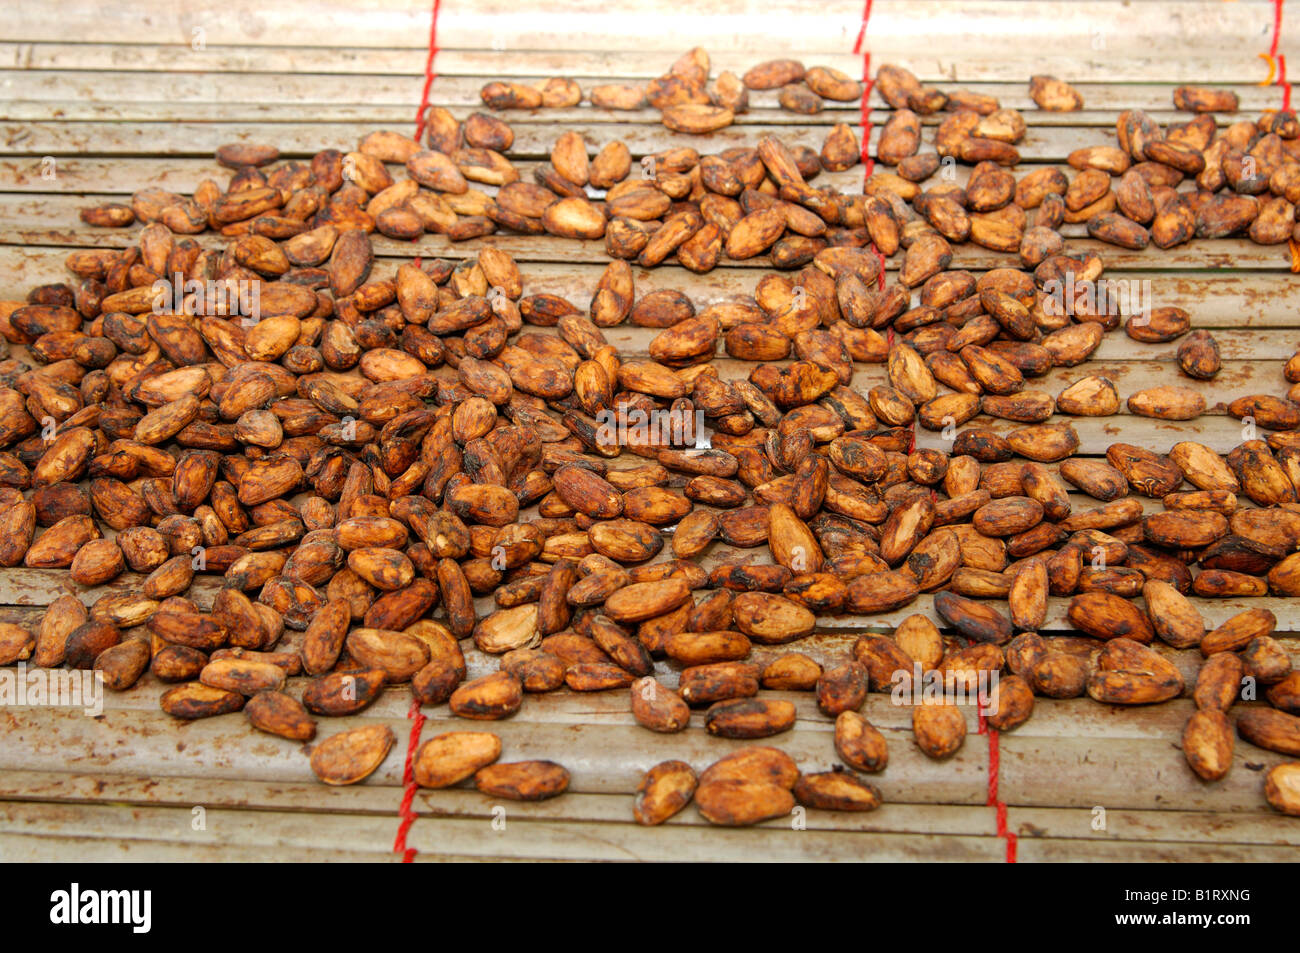 Fermented and dried cocoa beans (Theobroma cacao), Ghana, West Africa Stock Photo